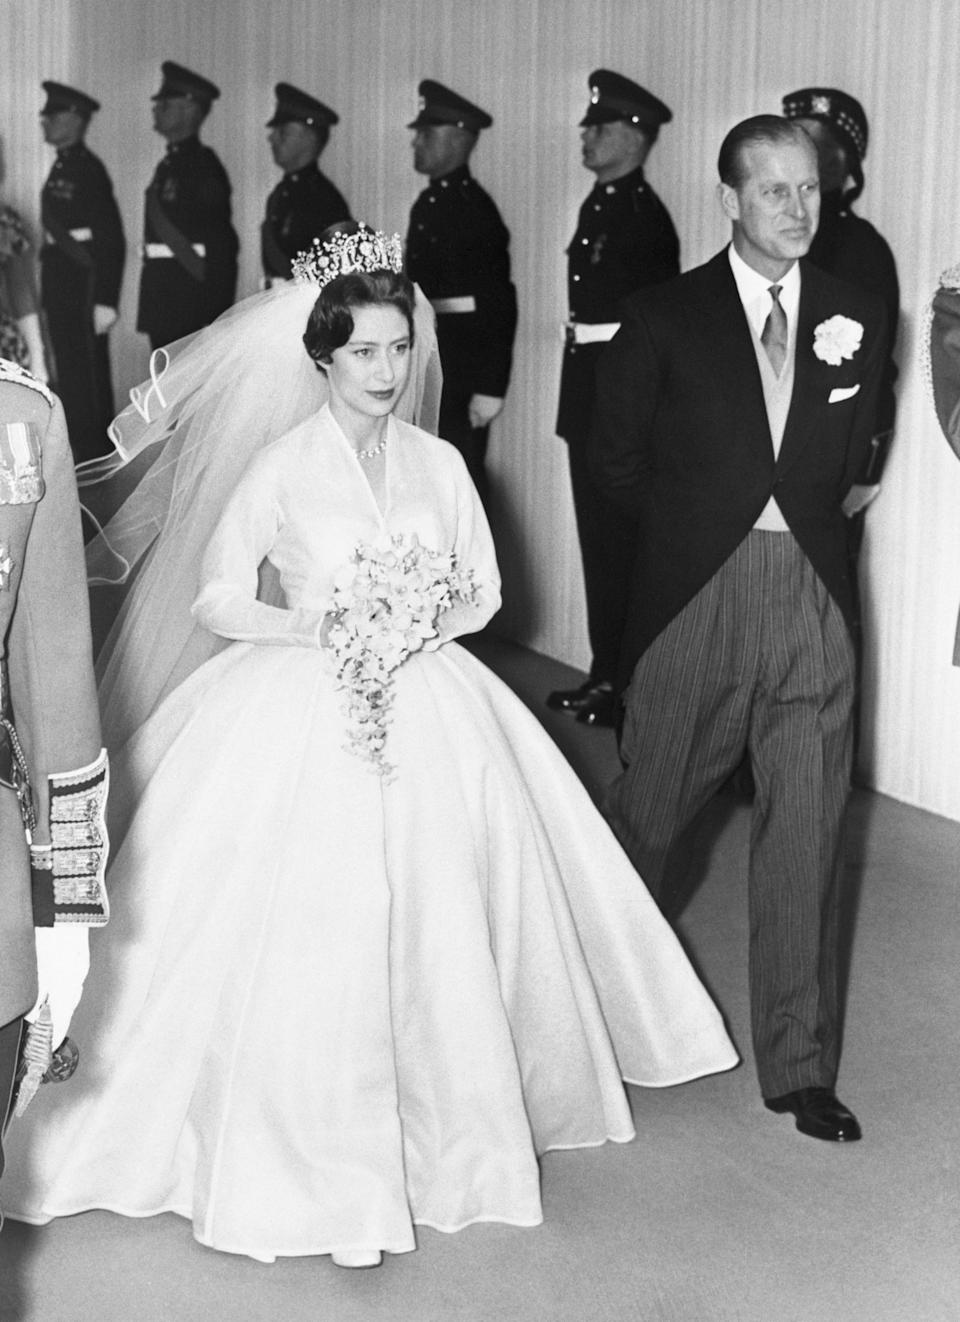 Princess Margaret is accompanied by her brother-in-law Prince Philip during her wedding to Antony Armstrong-Jones at Westminister Abbey.